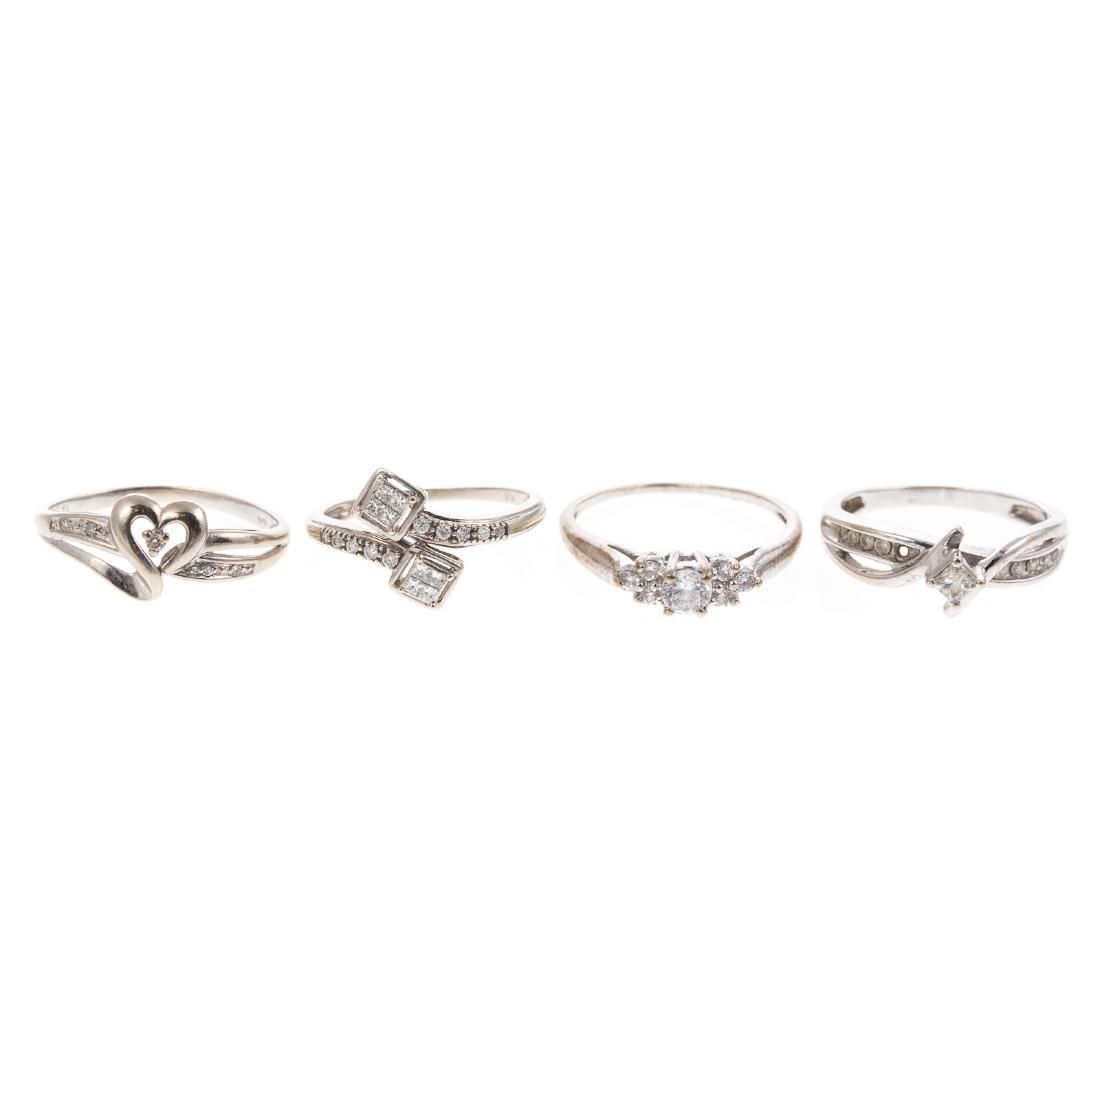 A Collection of Ladies White Gold Diamond Rings